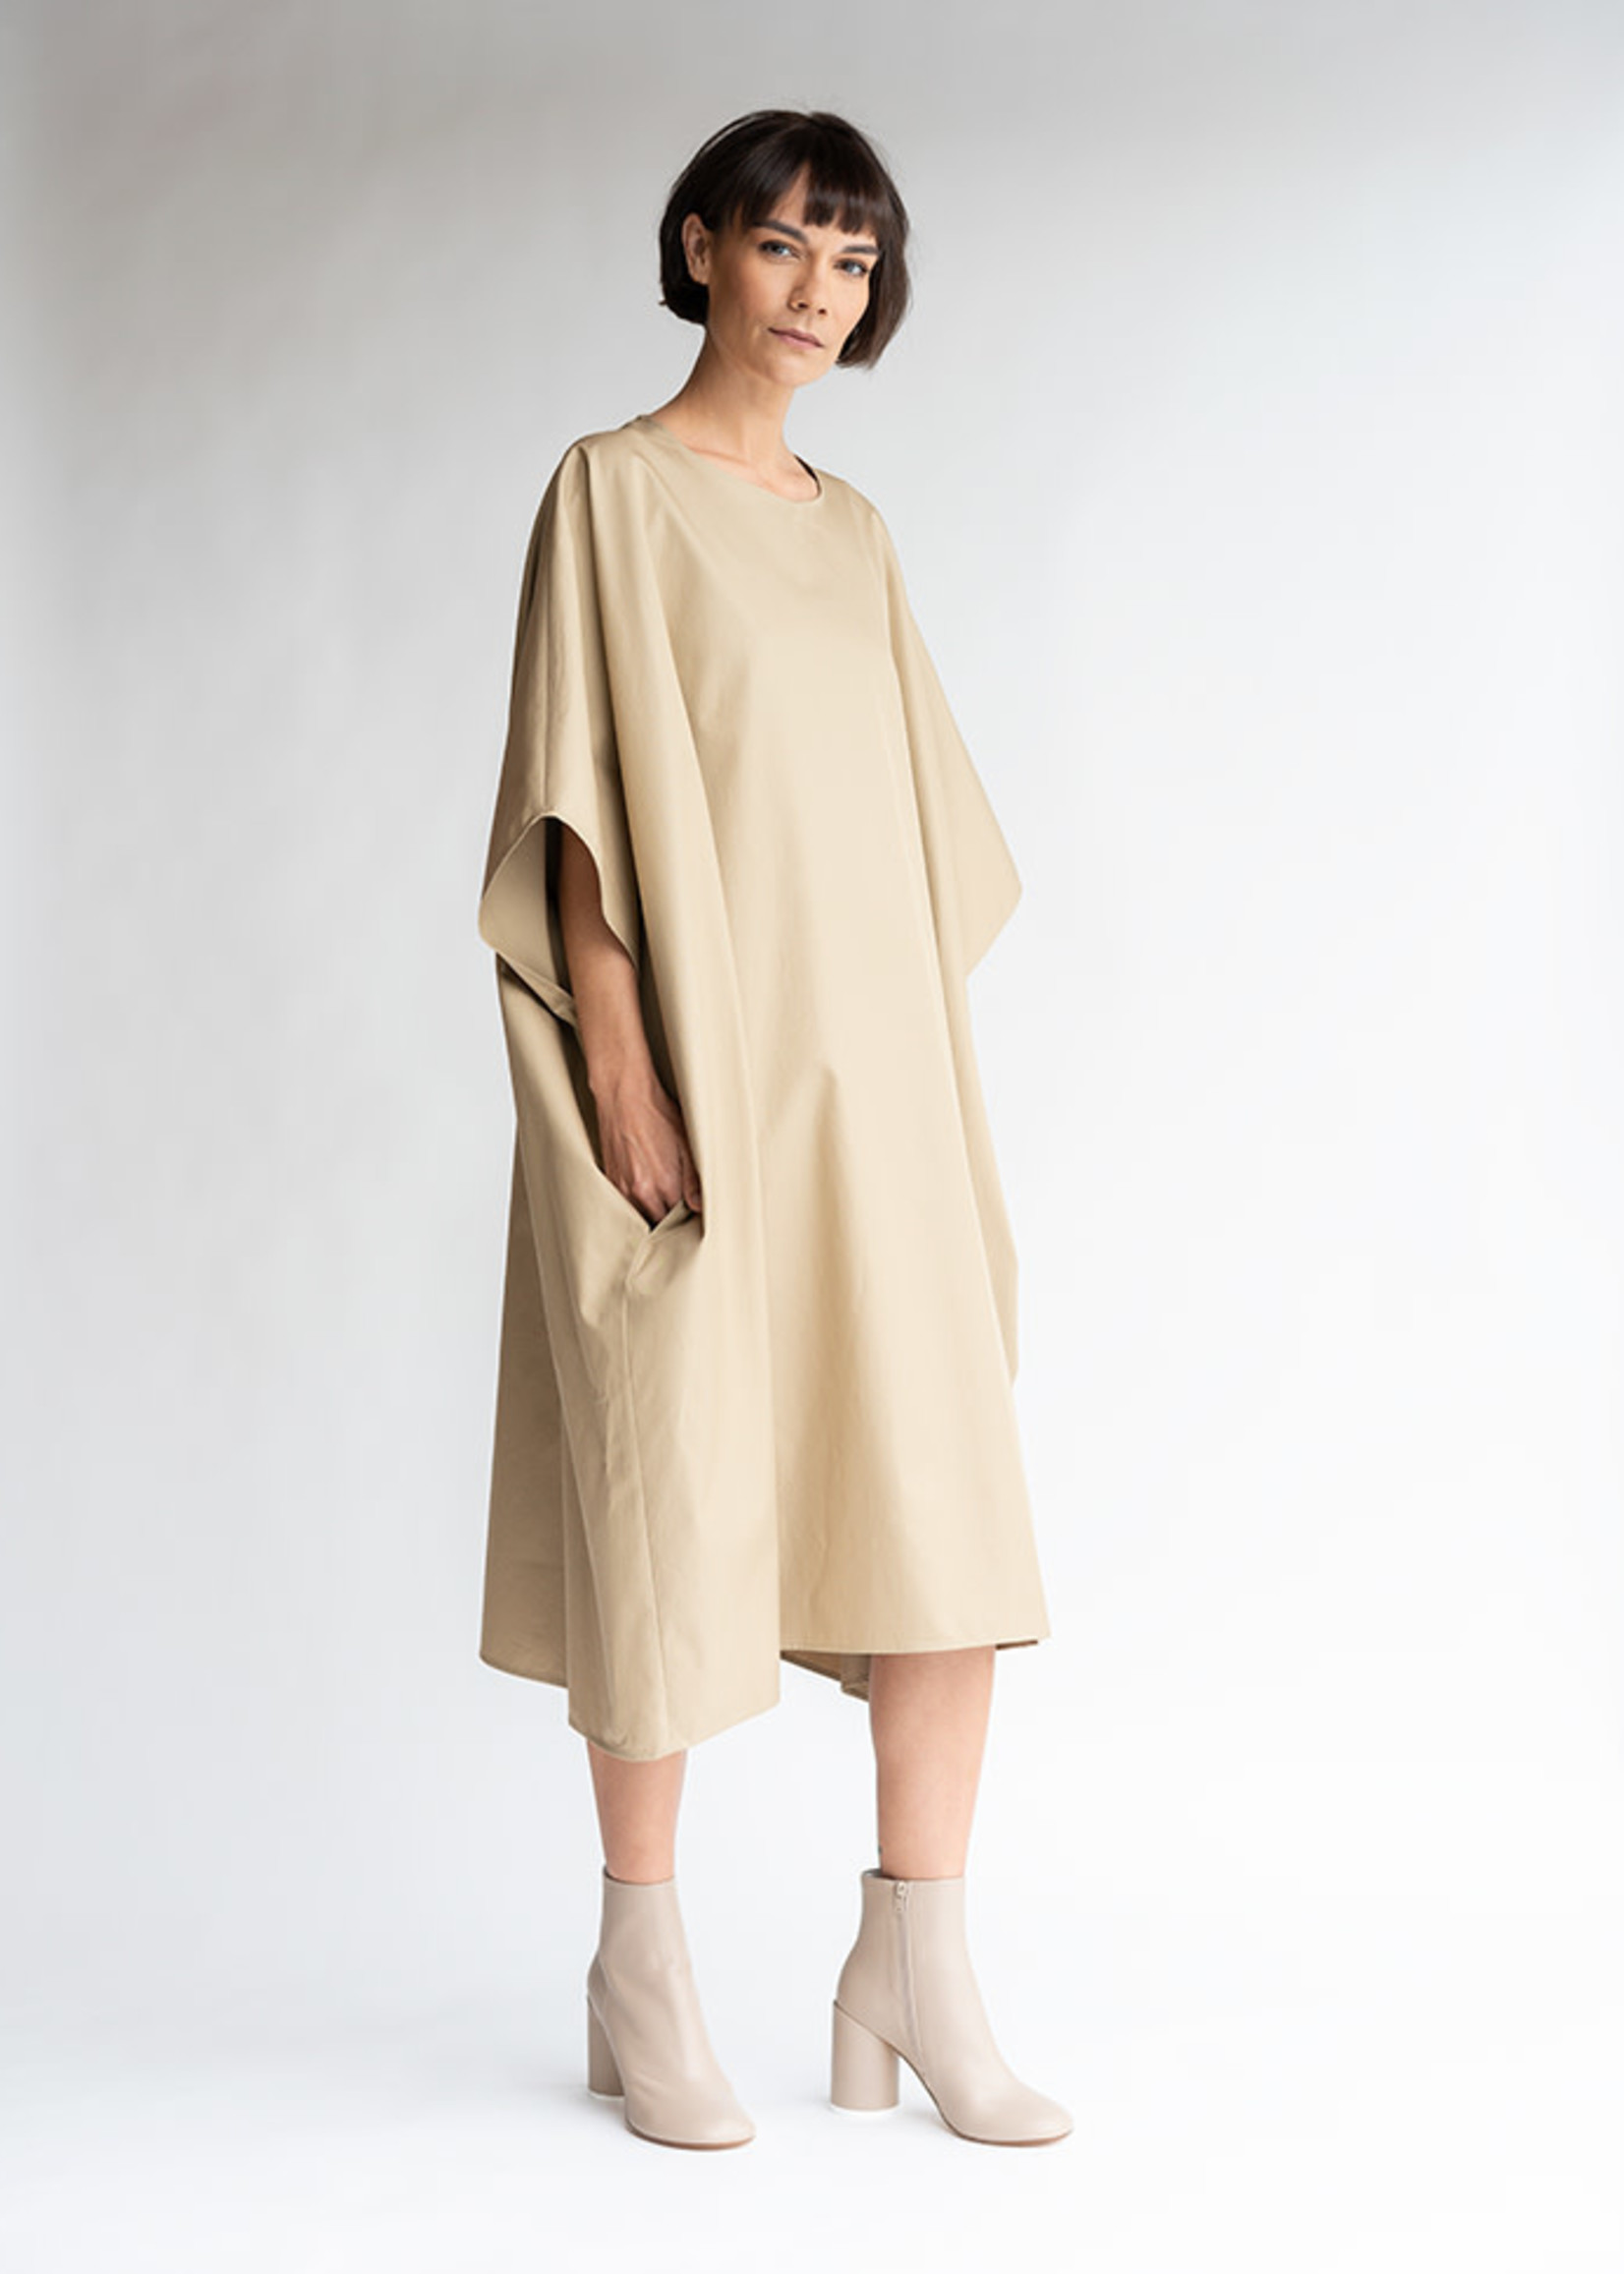 MM6 MAISON MARGIELA Oversized Dress in Camel